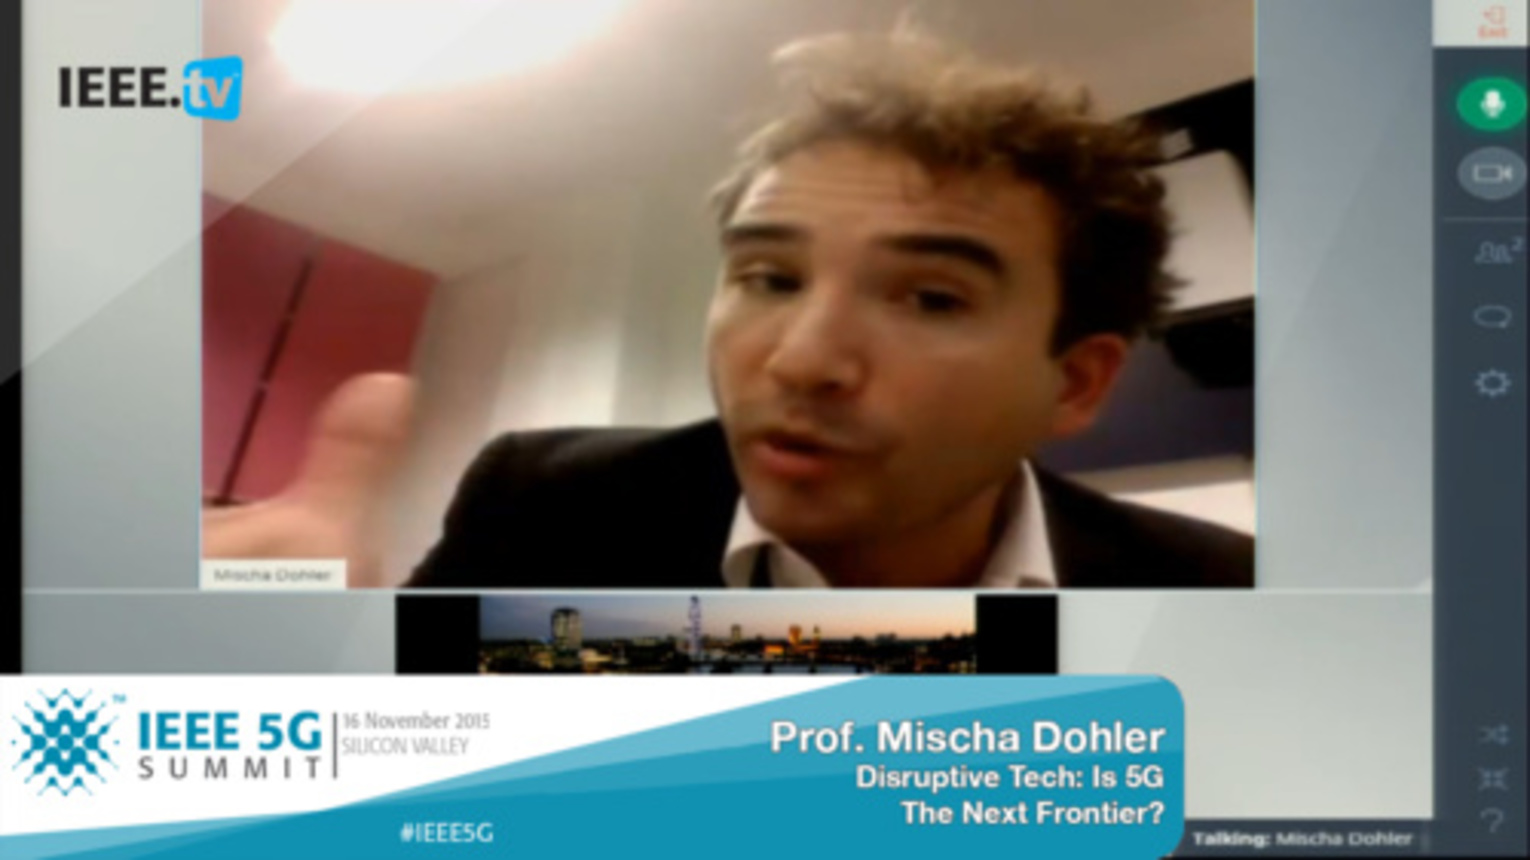 Silicon Valley 5G Summit - Prof. Mischa Dohler - Disruptive Tech: Is 5G The Next Frontier?